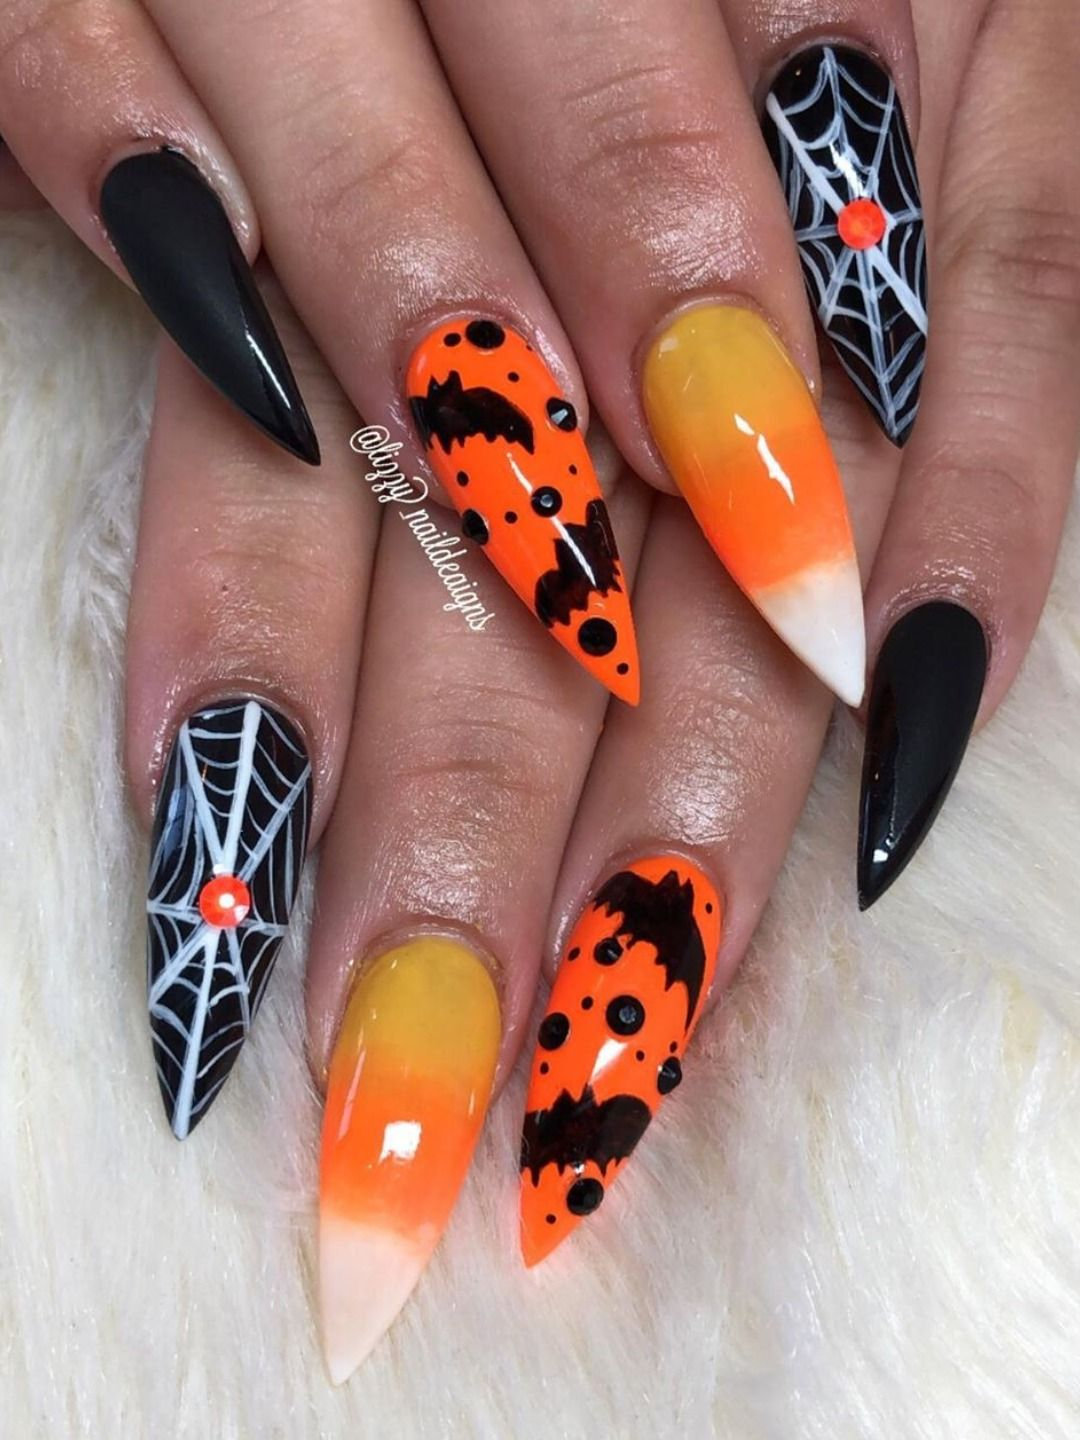 Pin By Brandi Butcher On Diseno A Mano Con Piedra Halloween Nails Halloween Nail Designs Candy Corn Nails